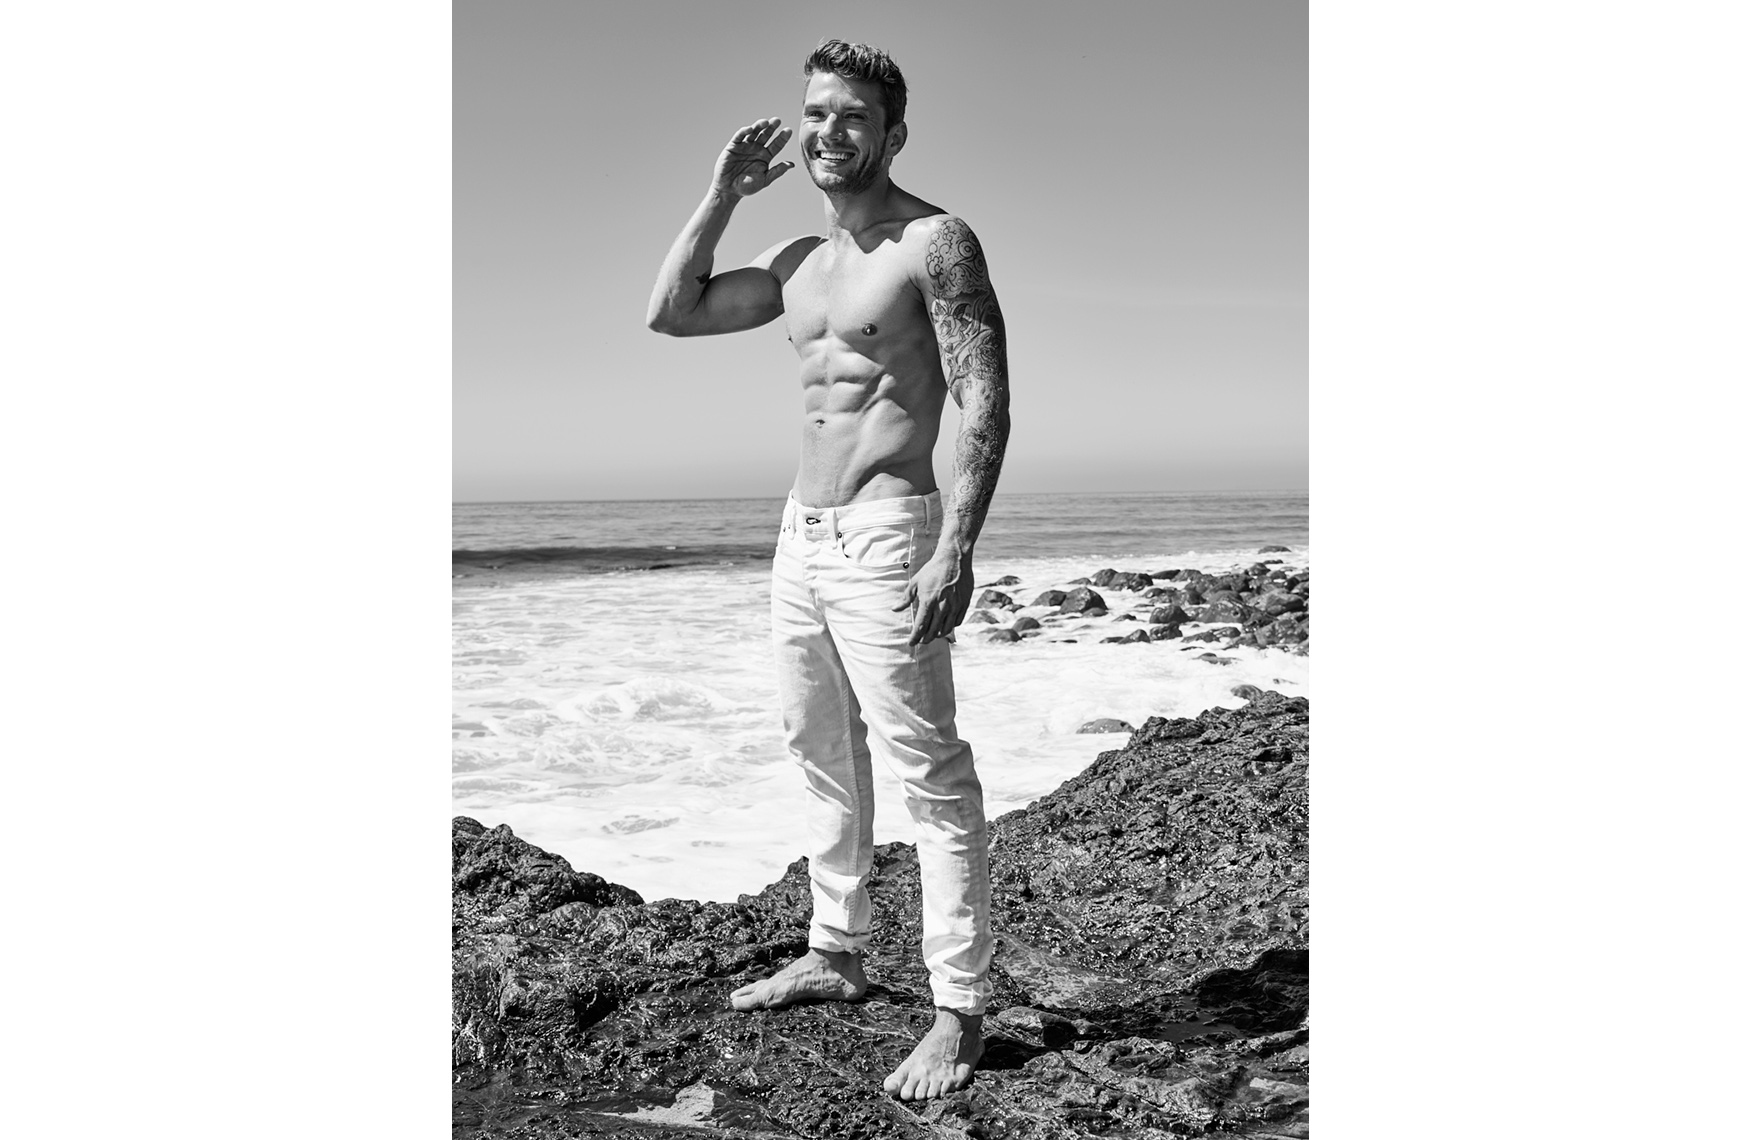 ryan_phillippe_p1-2